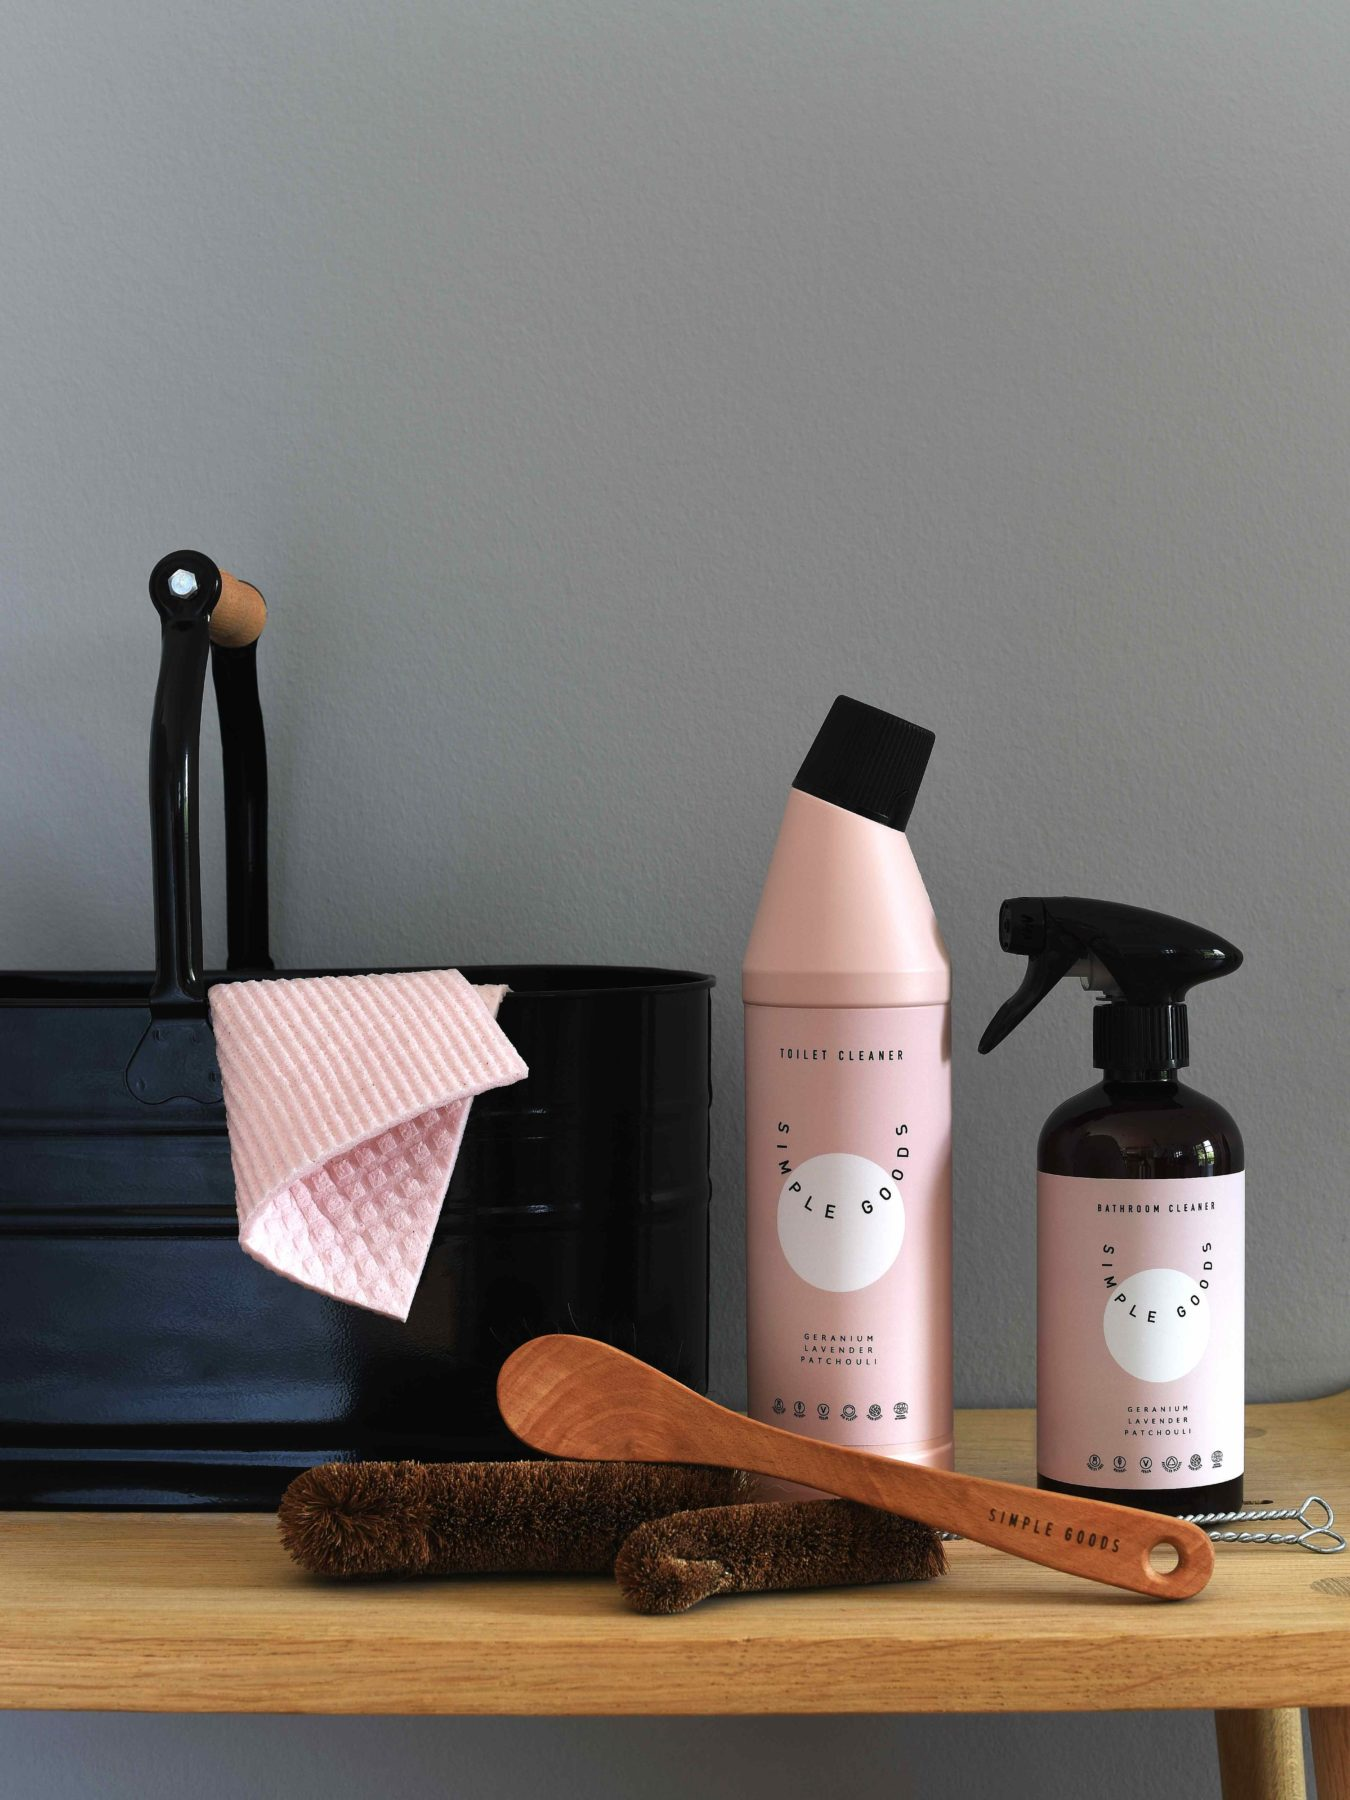 Simple Goods - Cleaning Caddy